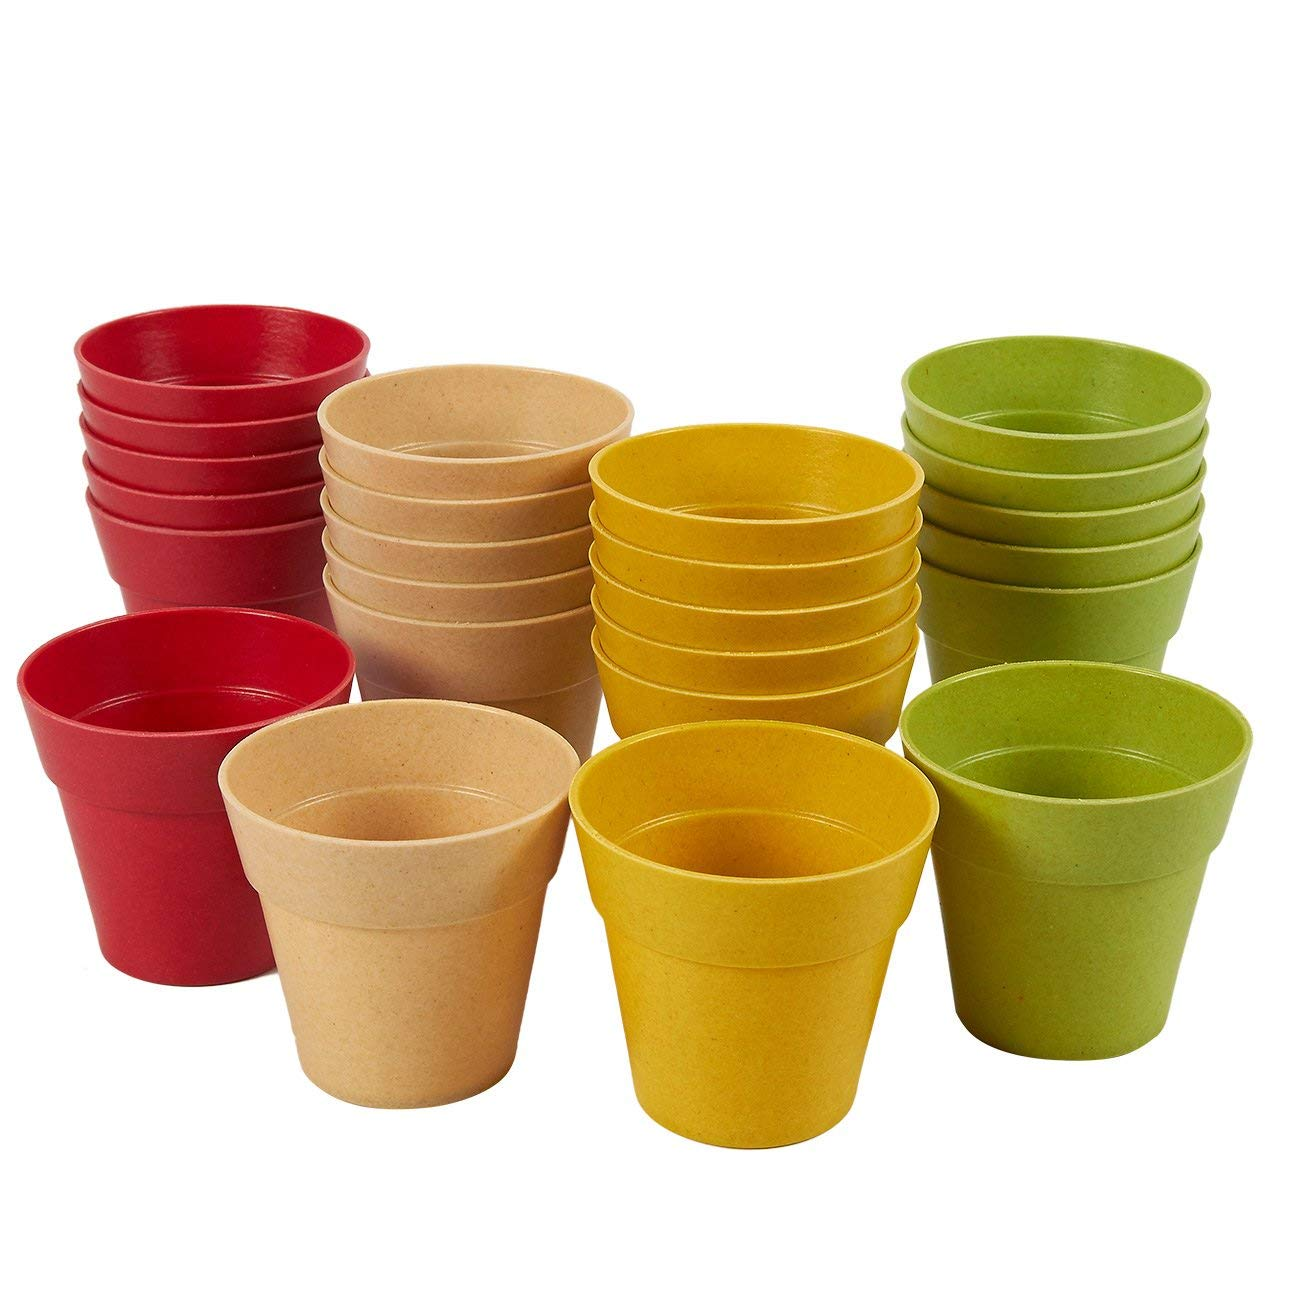 Plastic Plant Pot – 24 Pack Mini Flower Pots, Mini Flower Pot Planters for Indoor, Outdoor Plant, Succulent Display, 4 Assorted Colors, 1.5 x 2.3 inches